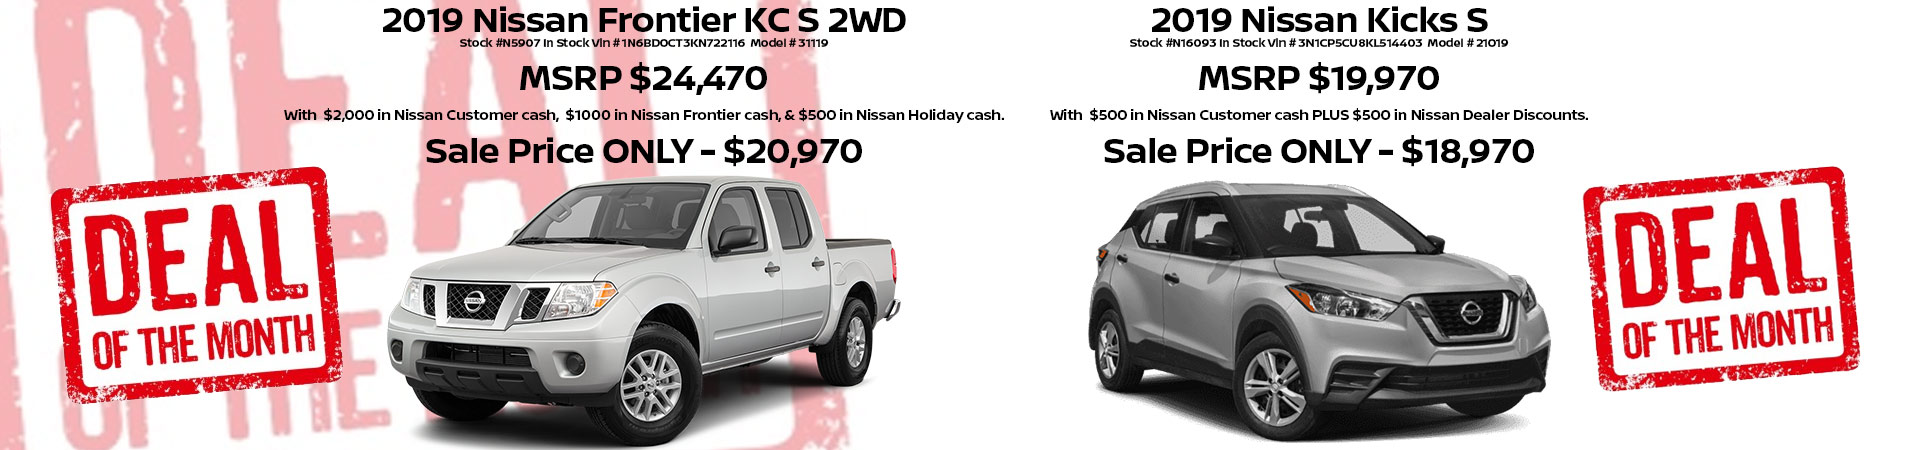 Nissan Frontier and Kicks Special